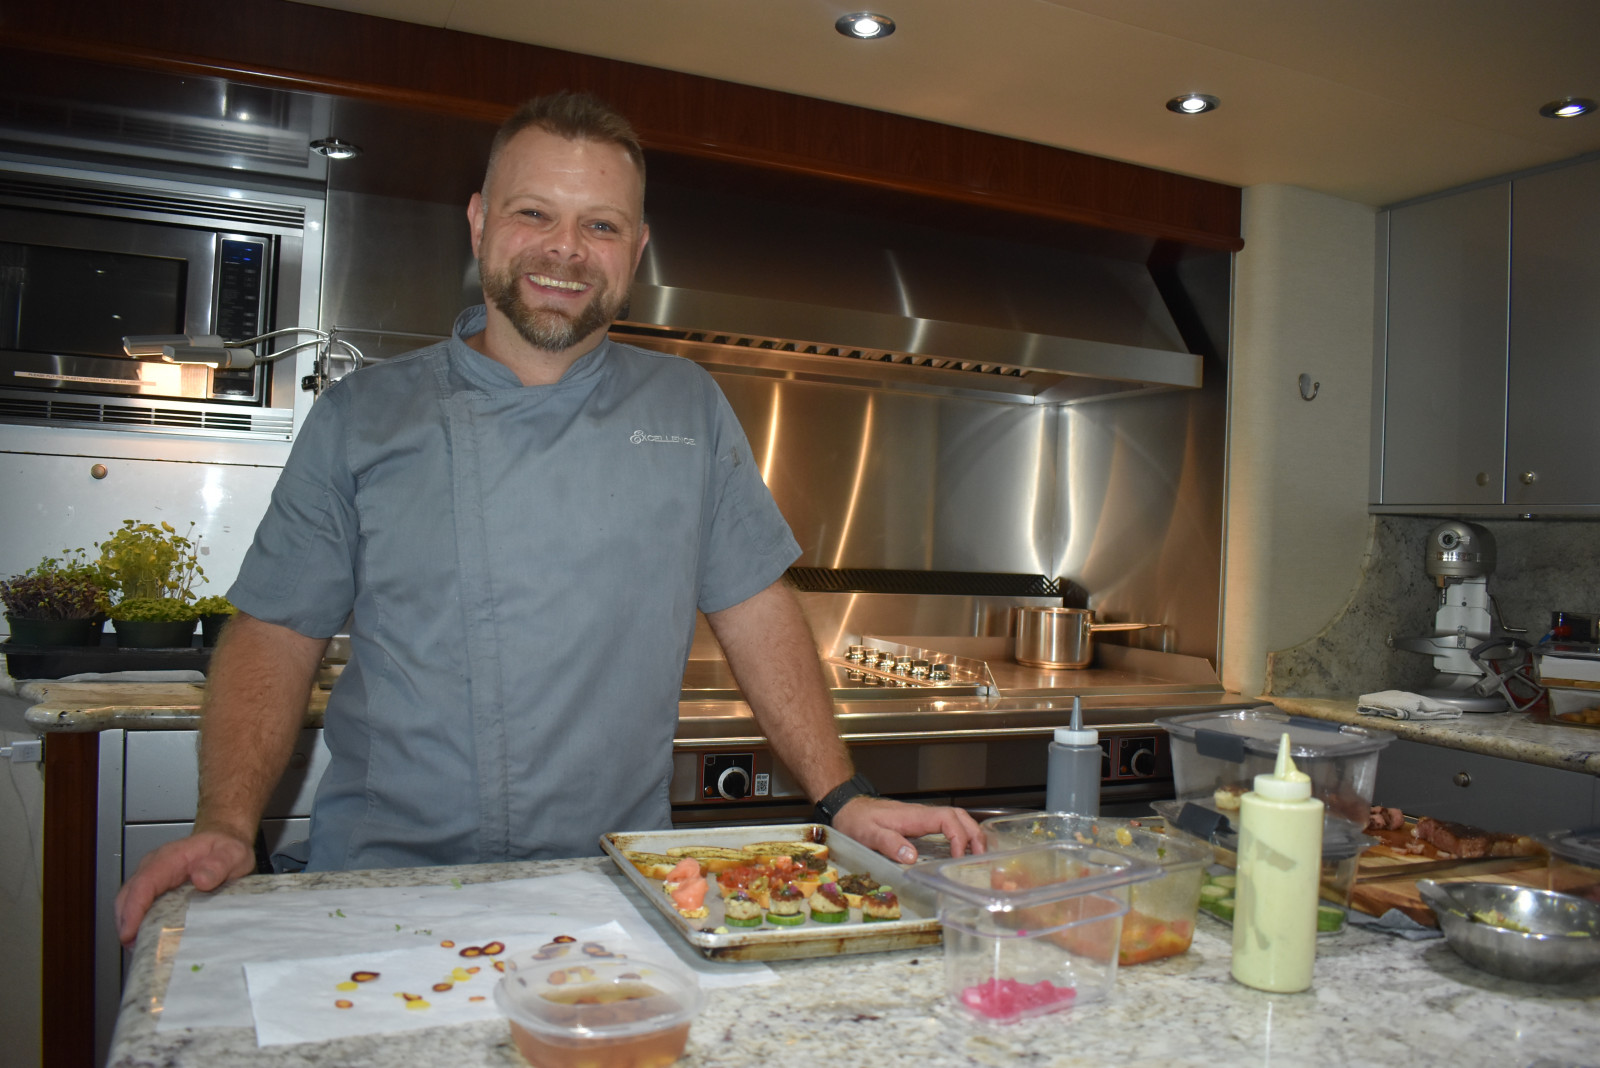 FLIBS19: Guests get treats as chefs compete